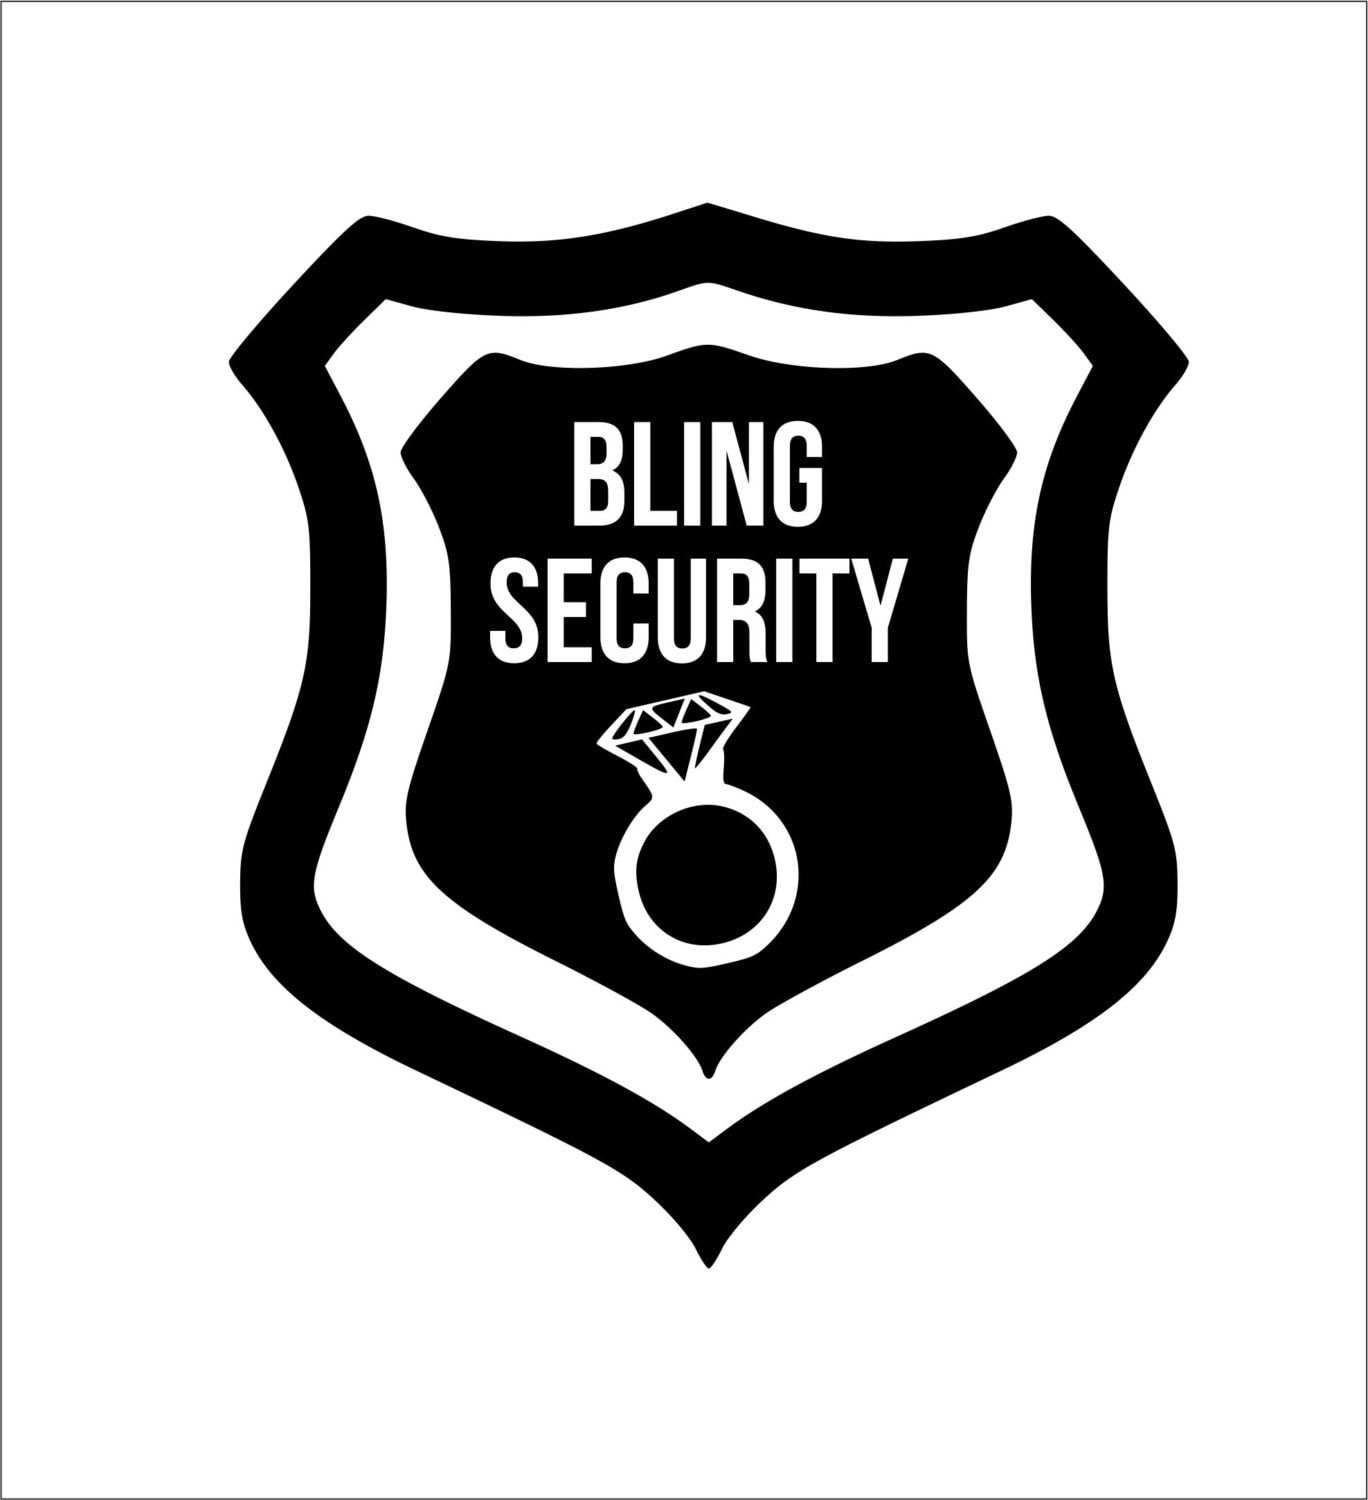 bling security iron on decal any color. Black Bedroom Furniture Sets. Home Design Ideas